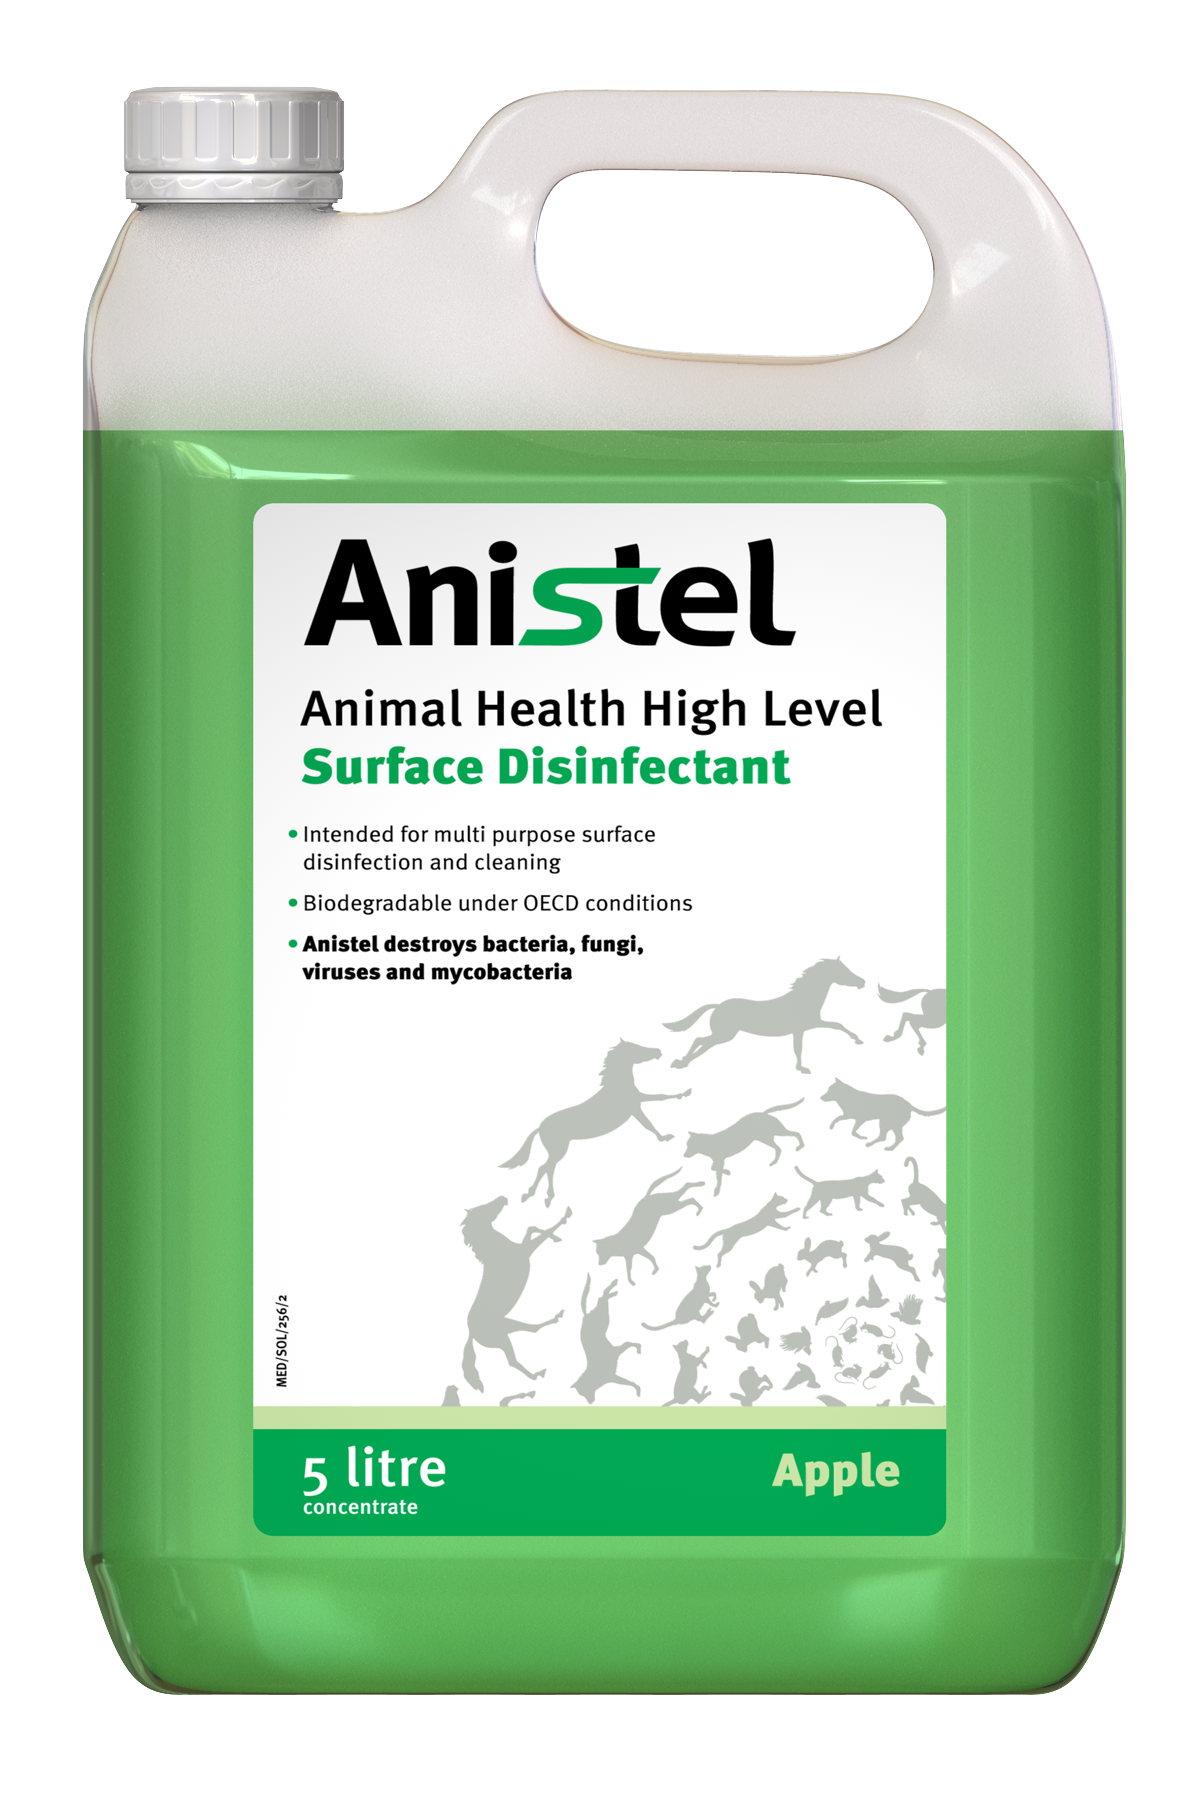 Tristel Anistel High Level Surface Disinfectant Ear Mites In Dogs